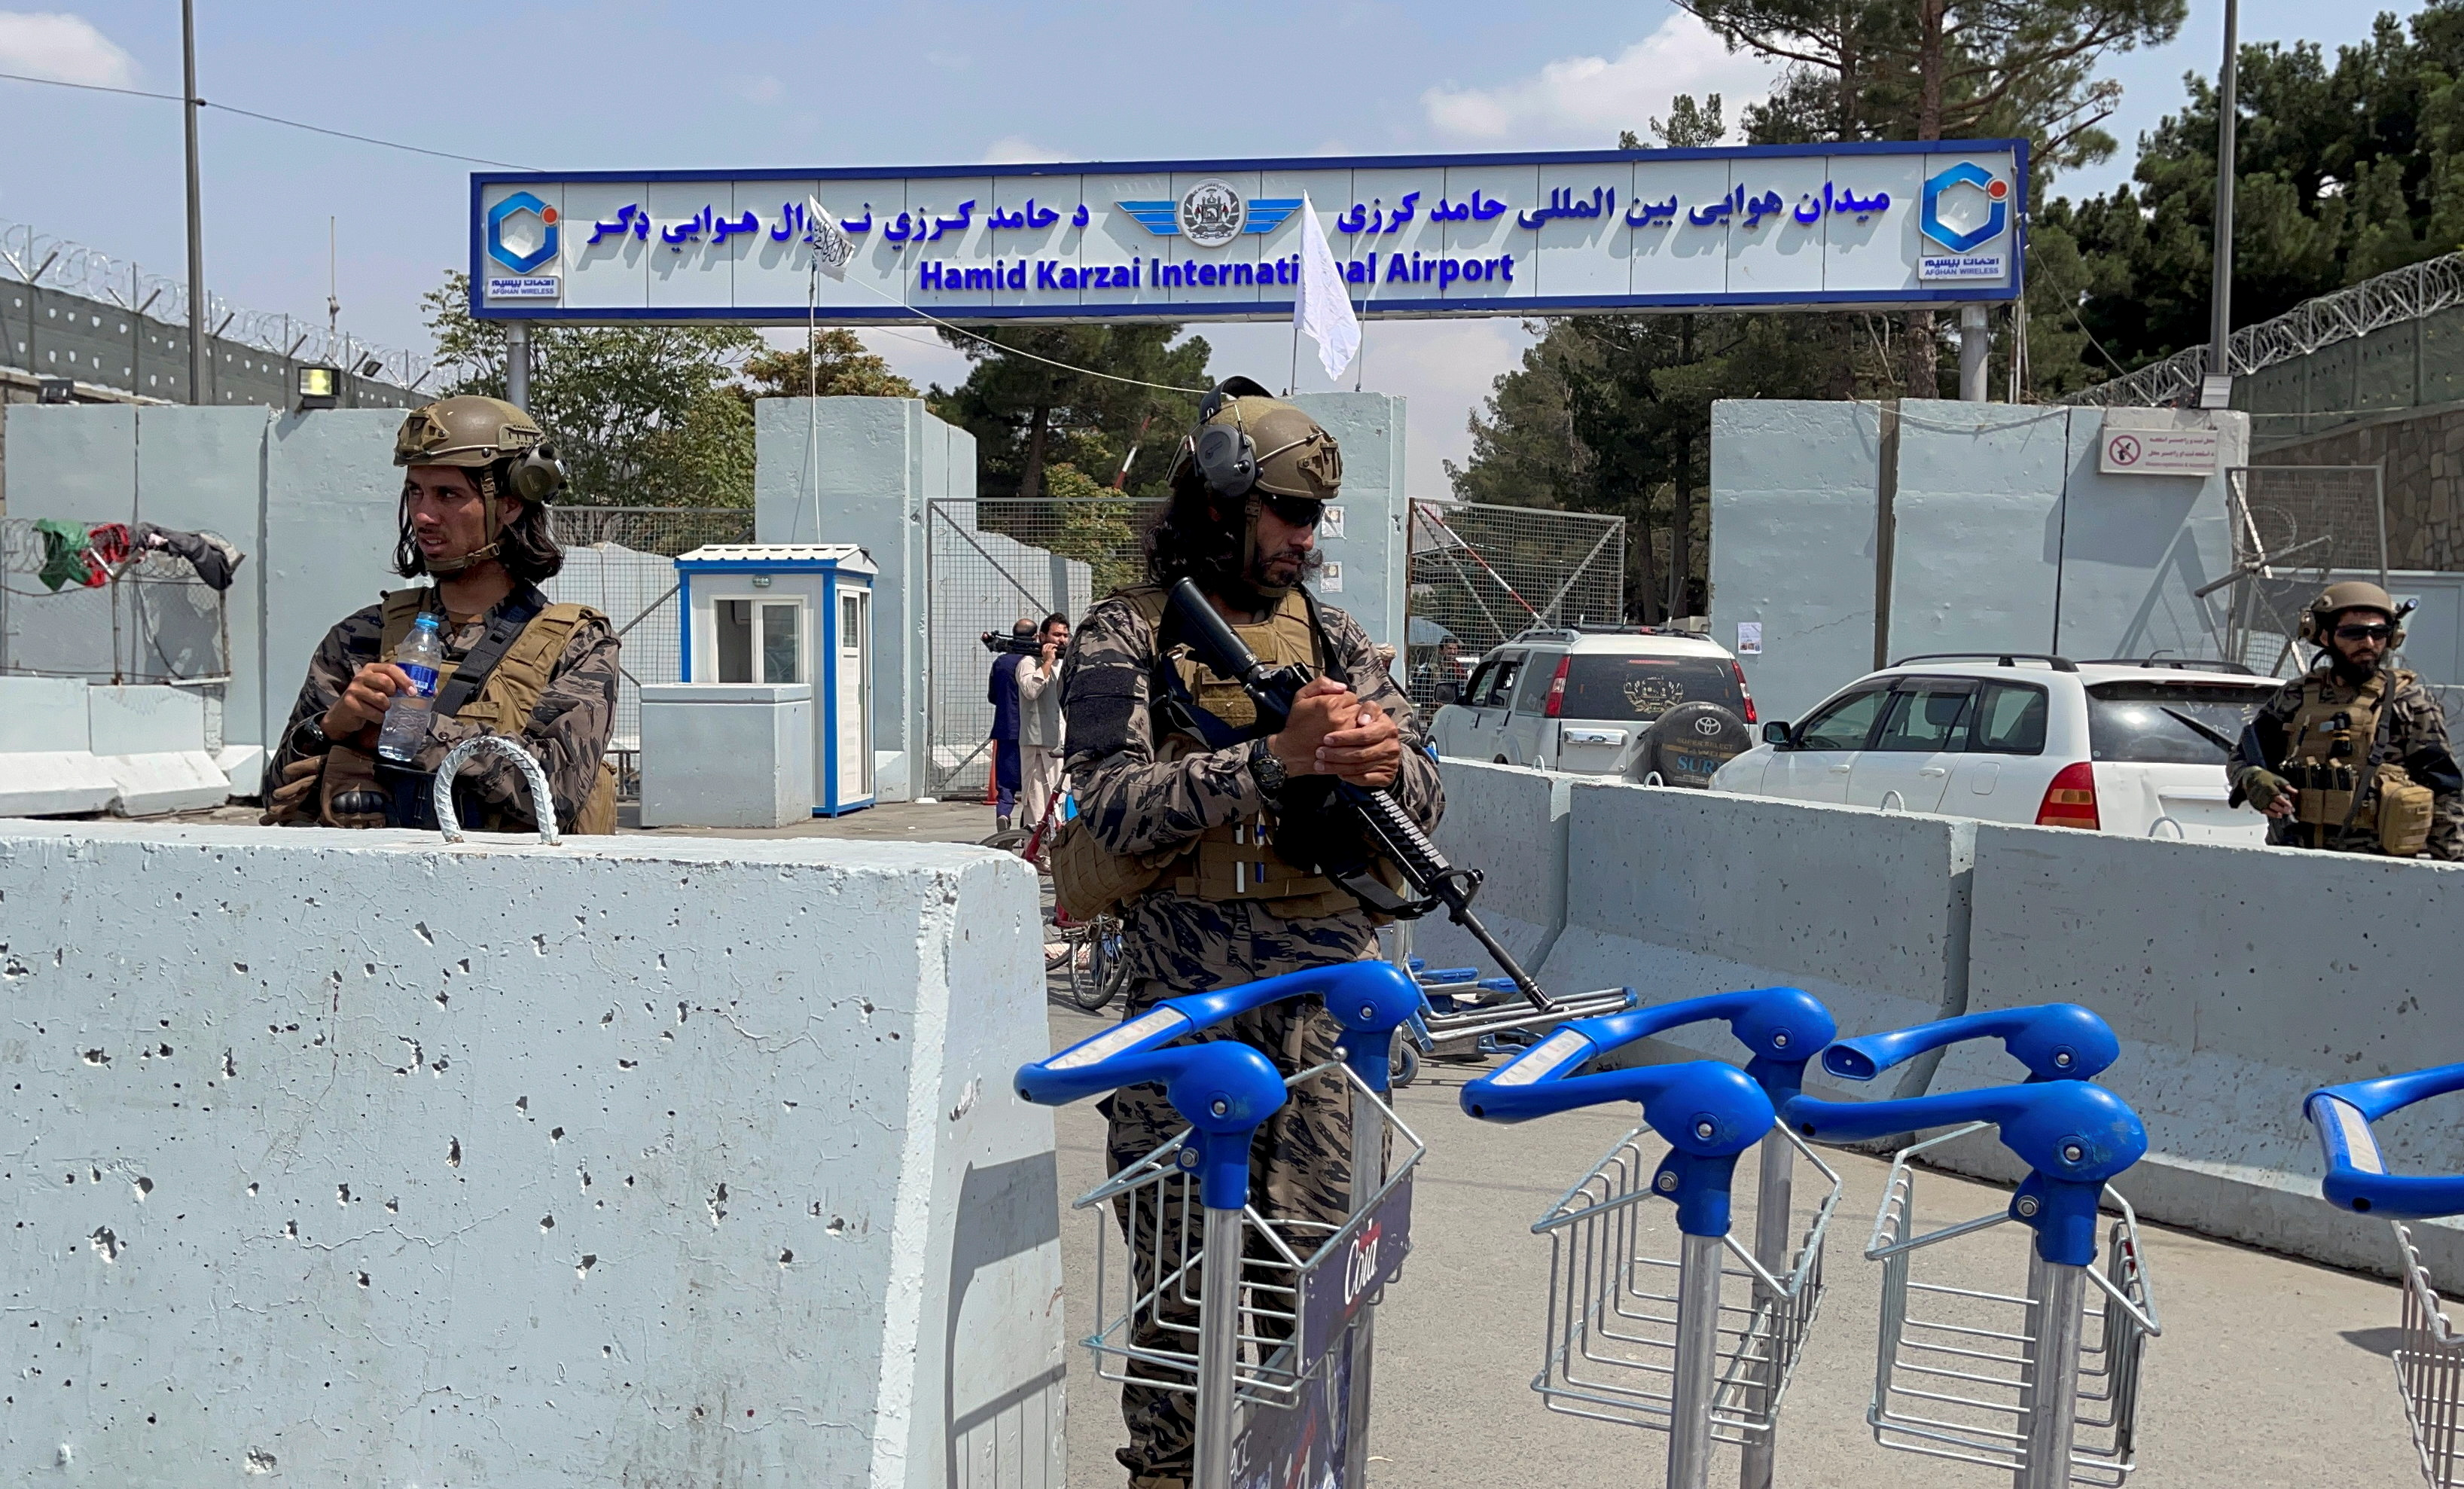 Taliban forces stand guard at the  entrance gate of Hamid Karzai International Airport a day after U.S troops withdrawal in Kabul, Afghanistan August 31, 2021. REUTERS/Stringer/File Photo